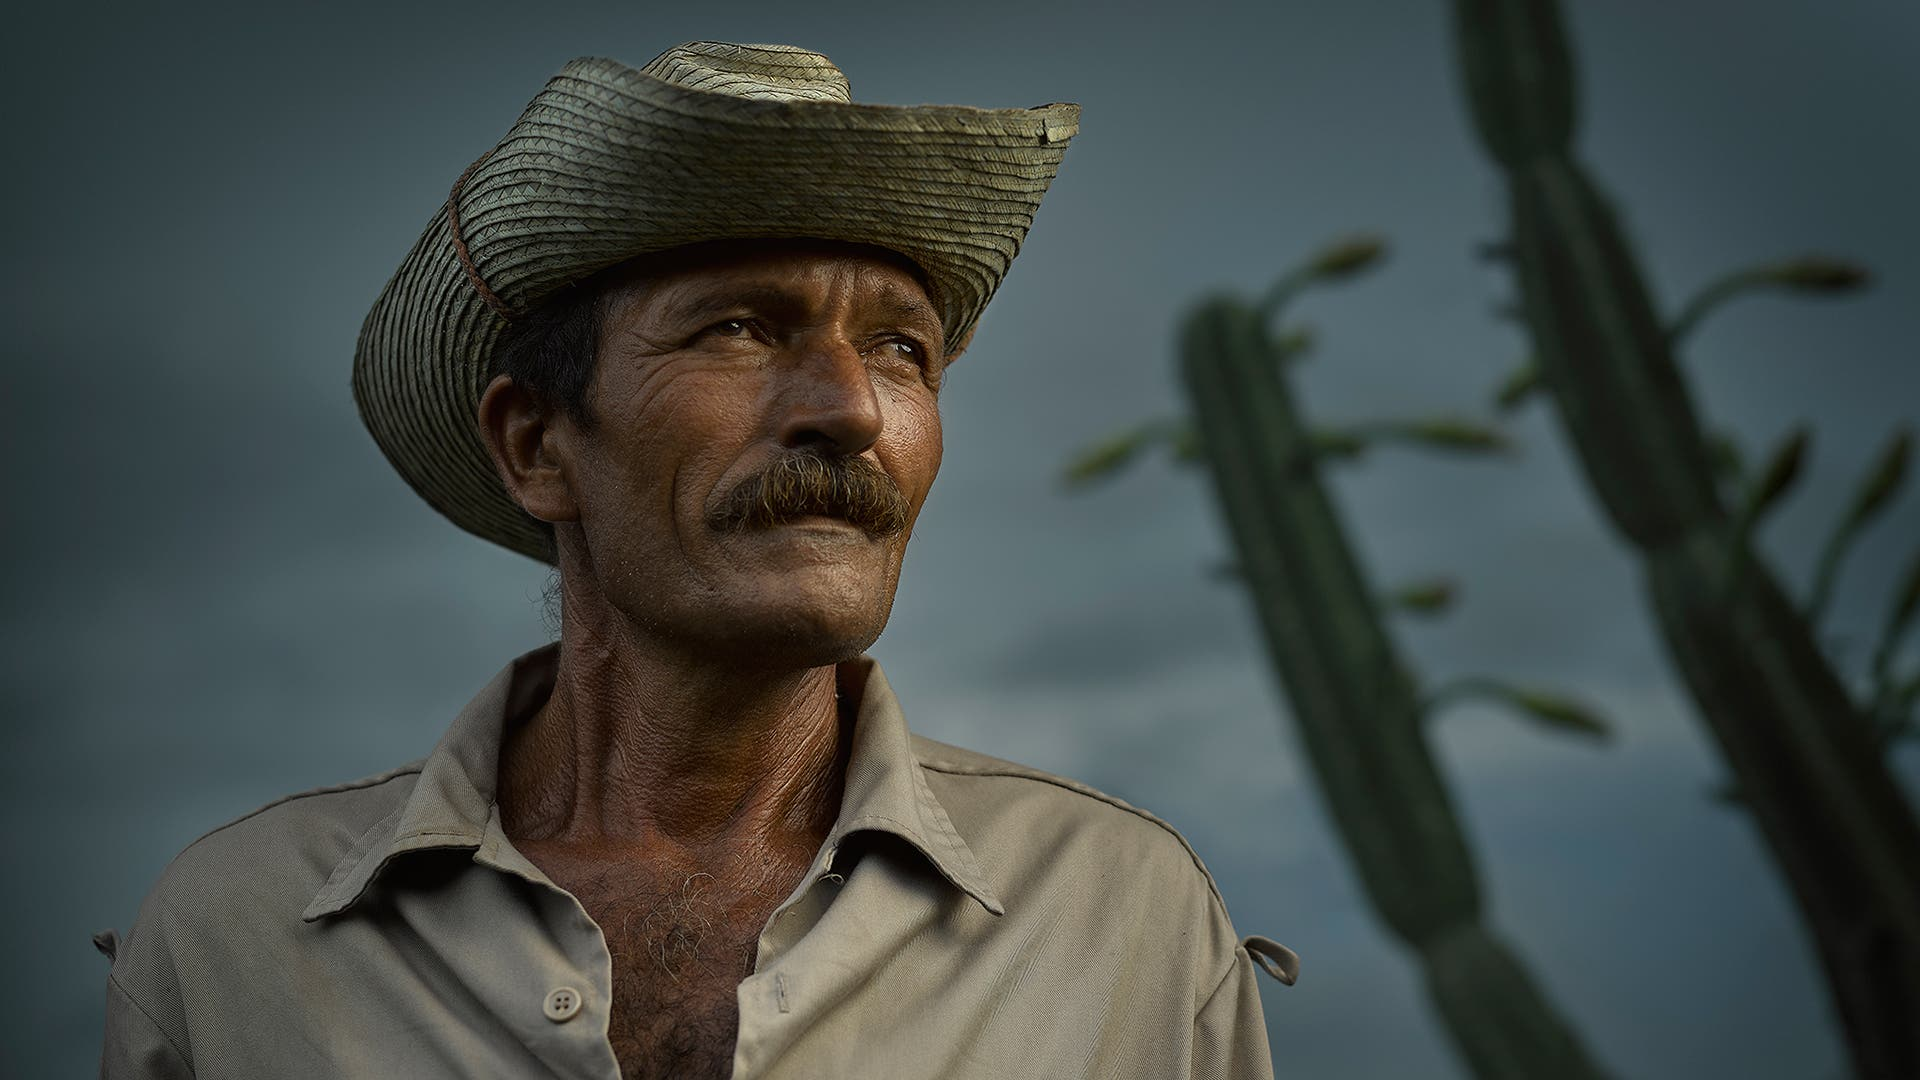 Jeroen Nieuwhuis' Portrait Series is Beautiful Glimpse Into the Lives of the 'People of Cuba'